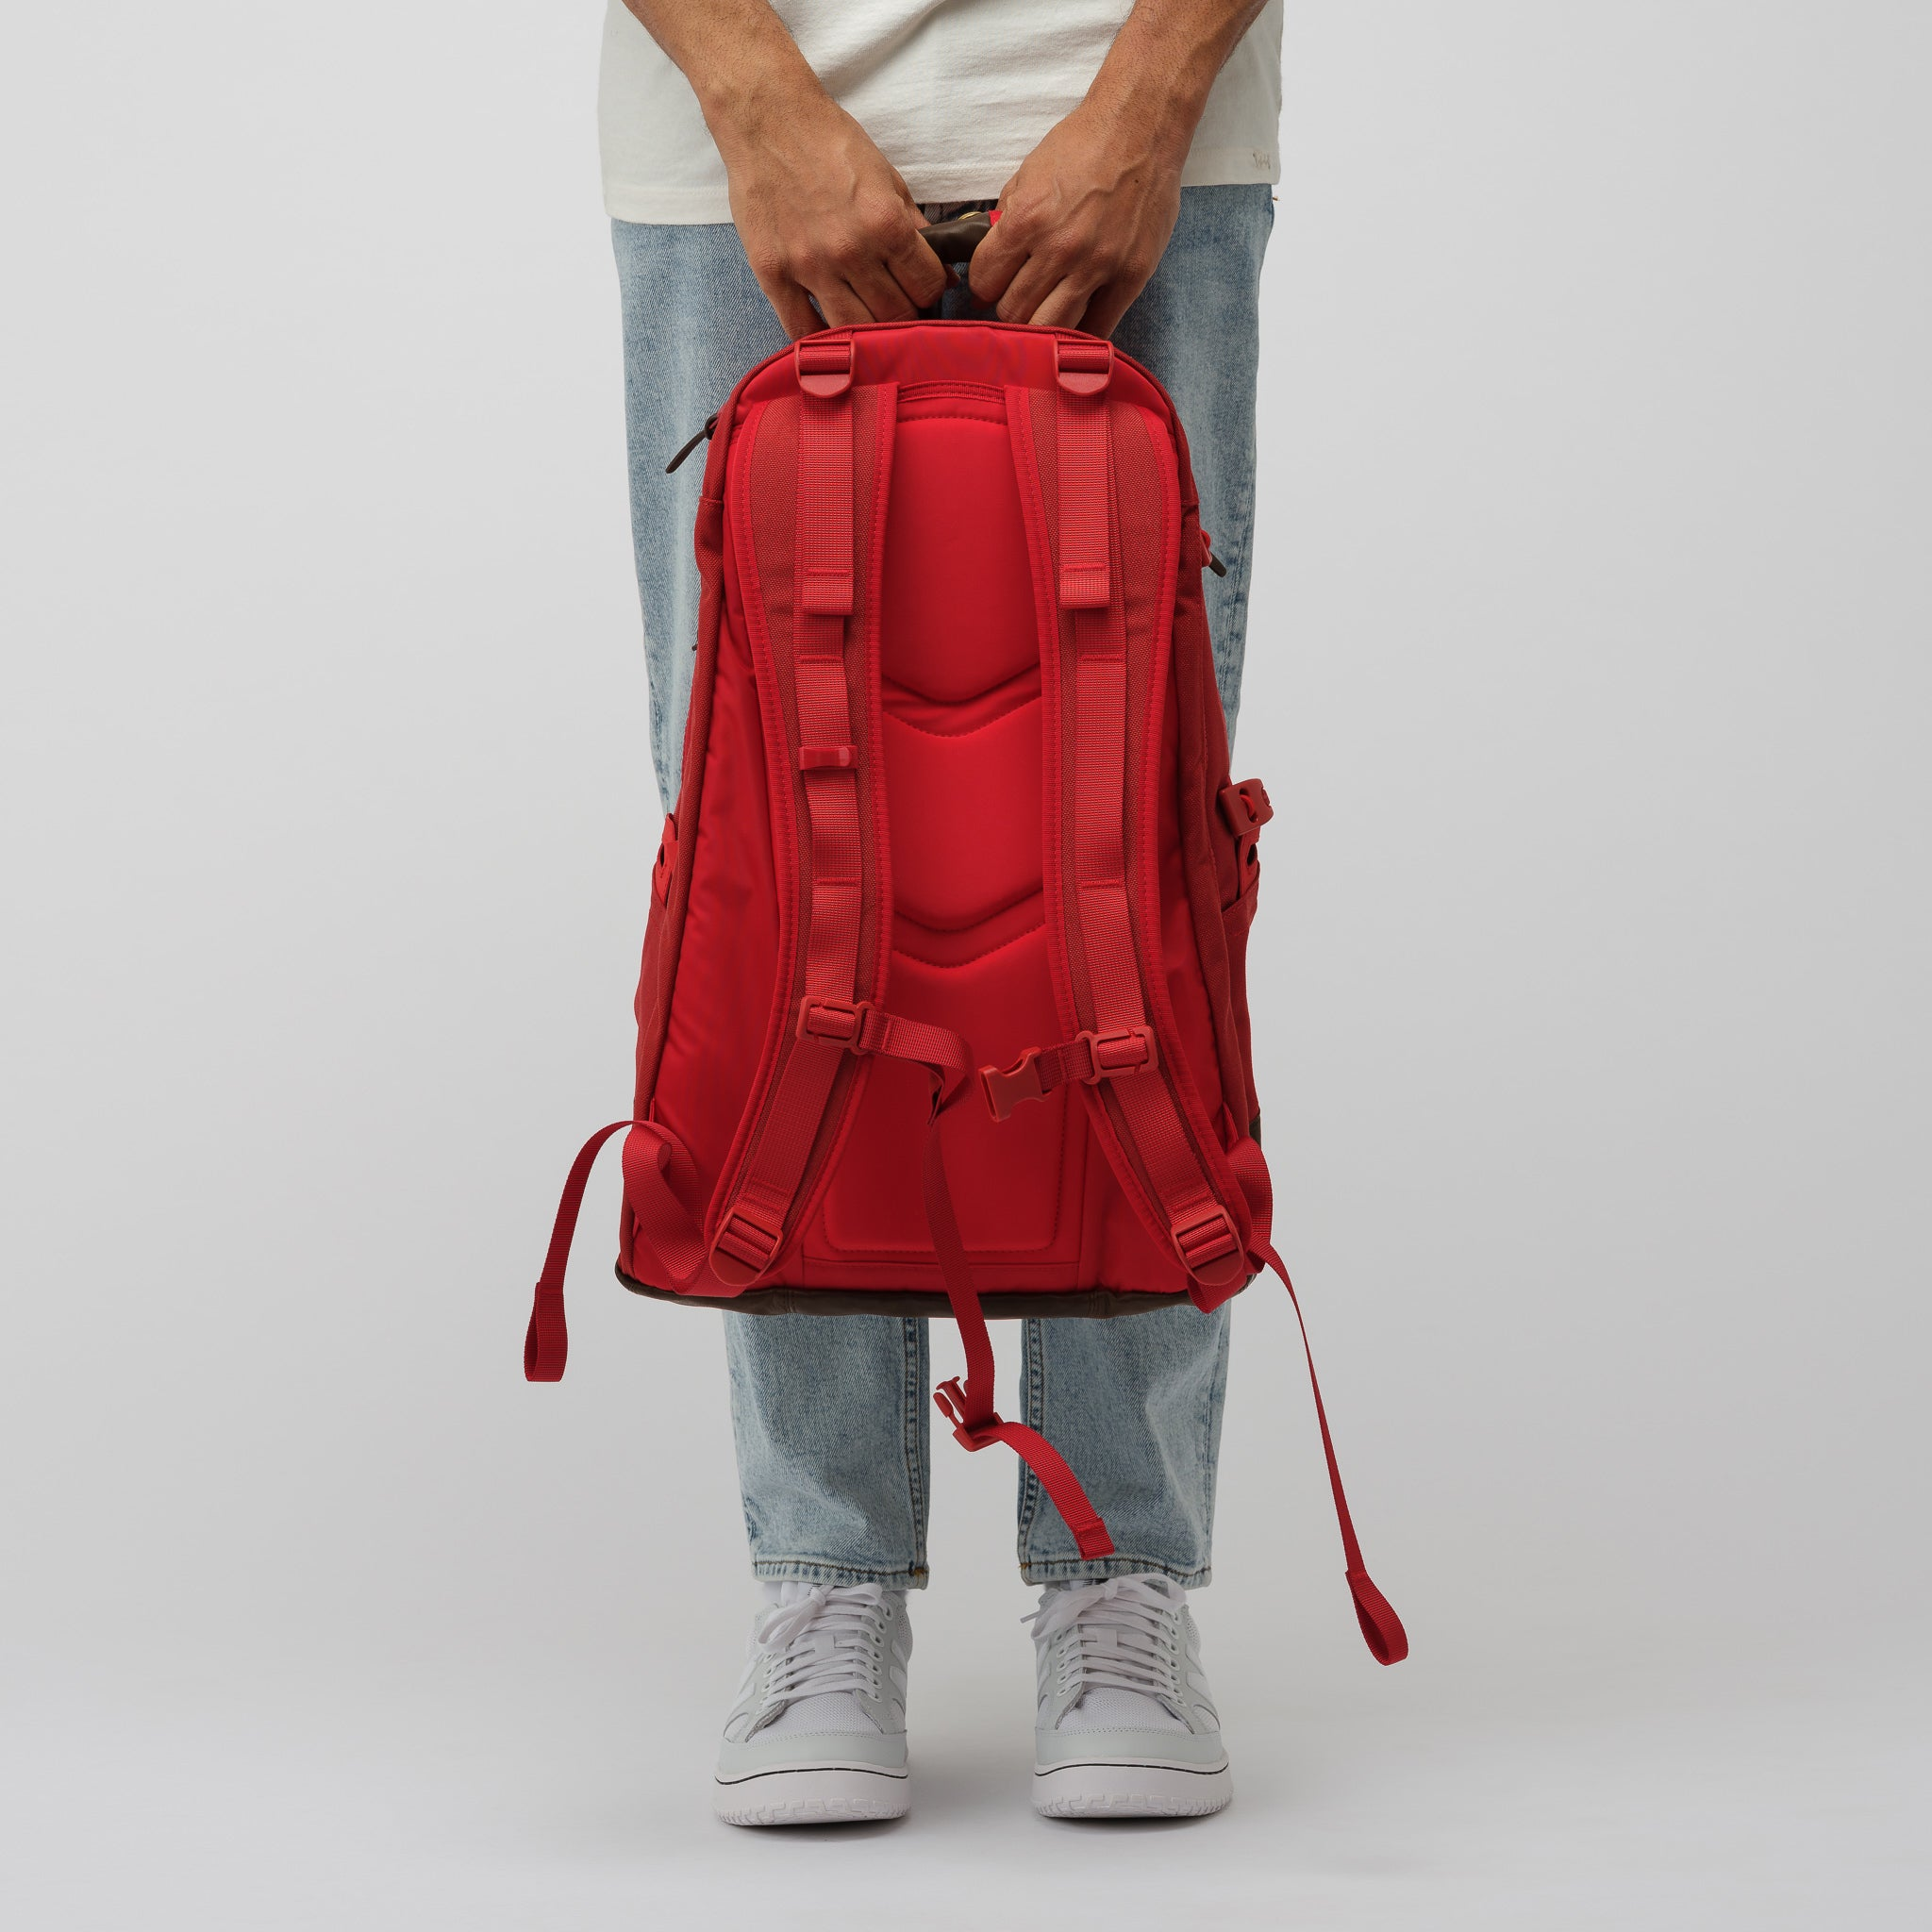 20L Cordura Backpack Veg Lamb 2019 in Red